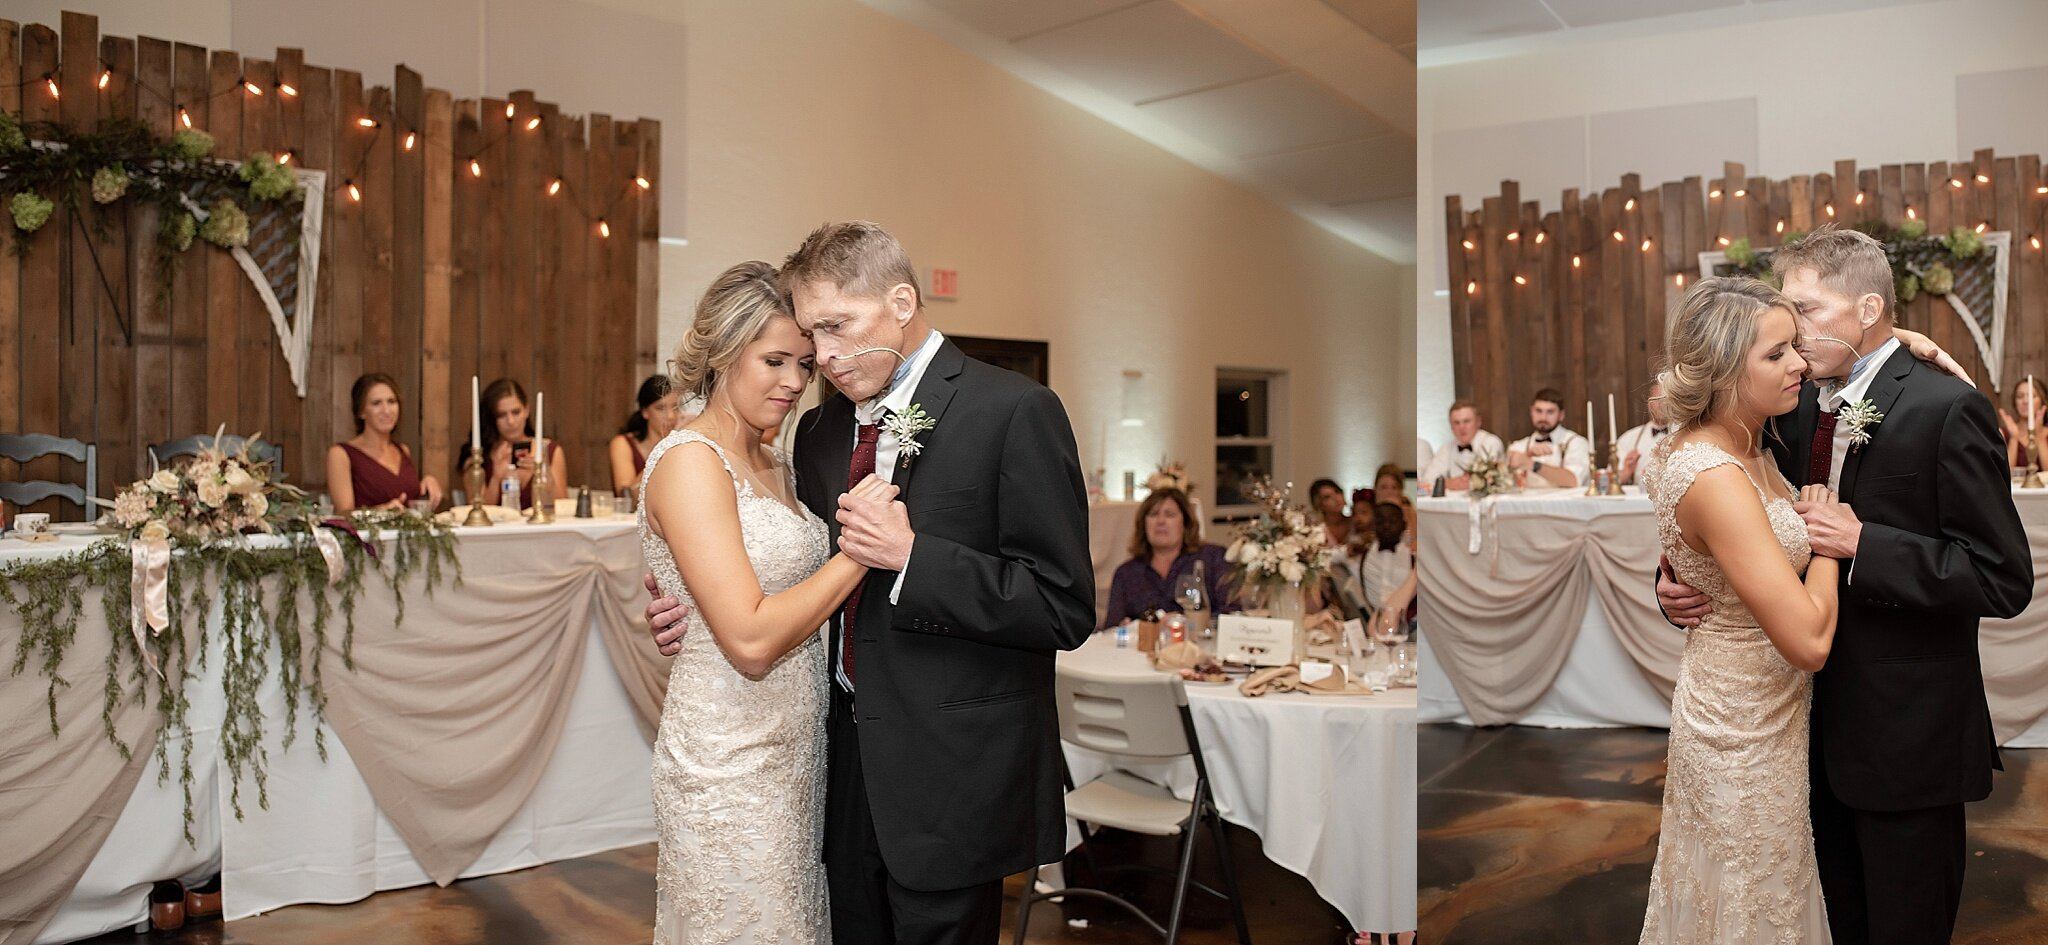 ill father dances with his daughter at her wedding